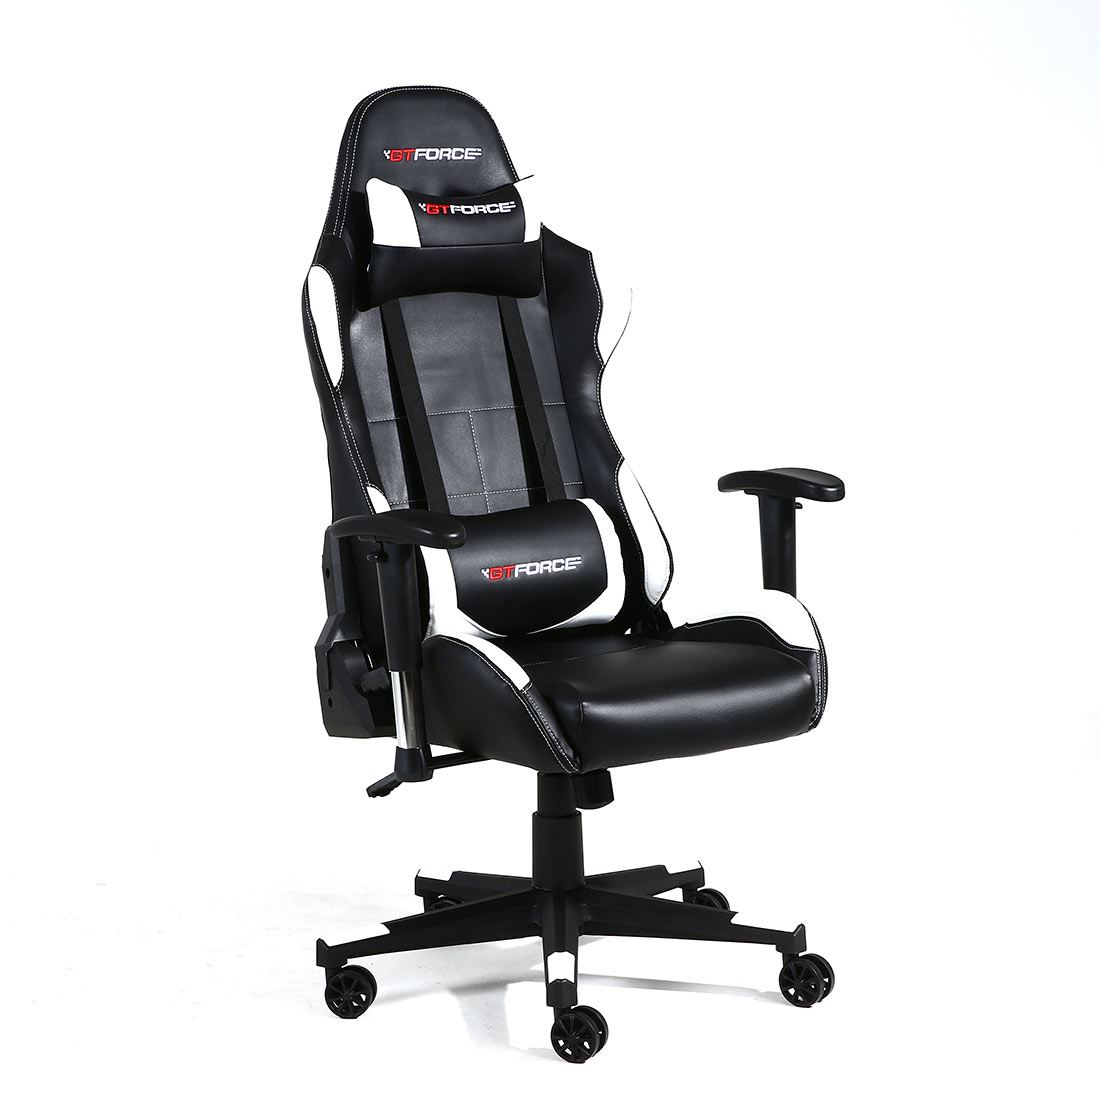 GTFORCE-PRO-BX-RECLINING-SPORTS-RACING-GAMING-OFFICE-DESK-PC-CAR-LEATHER-CHAIR